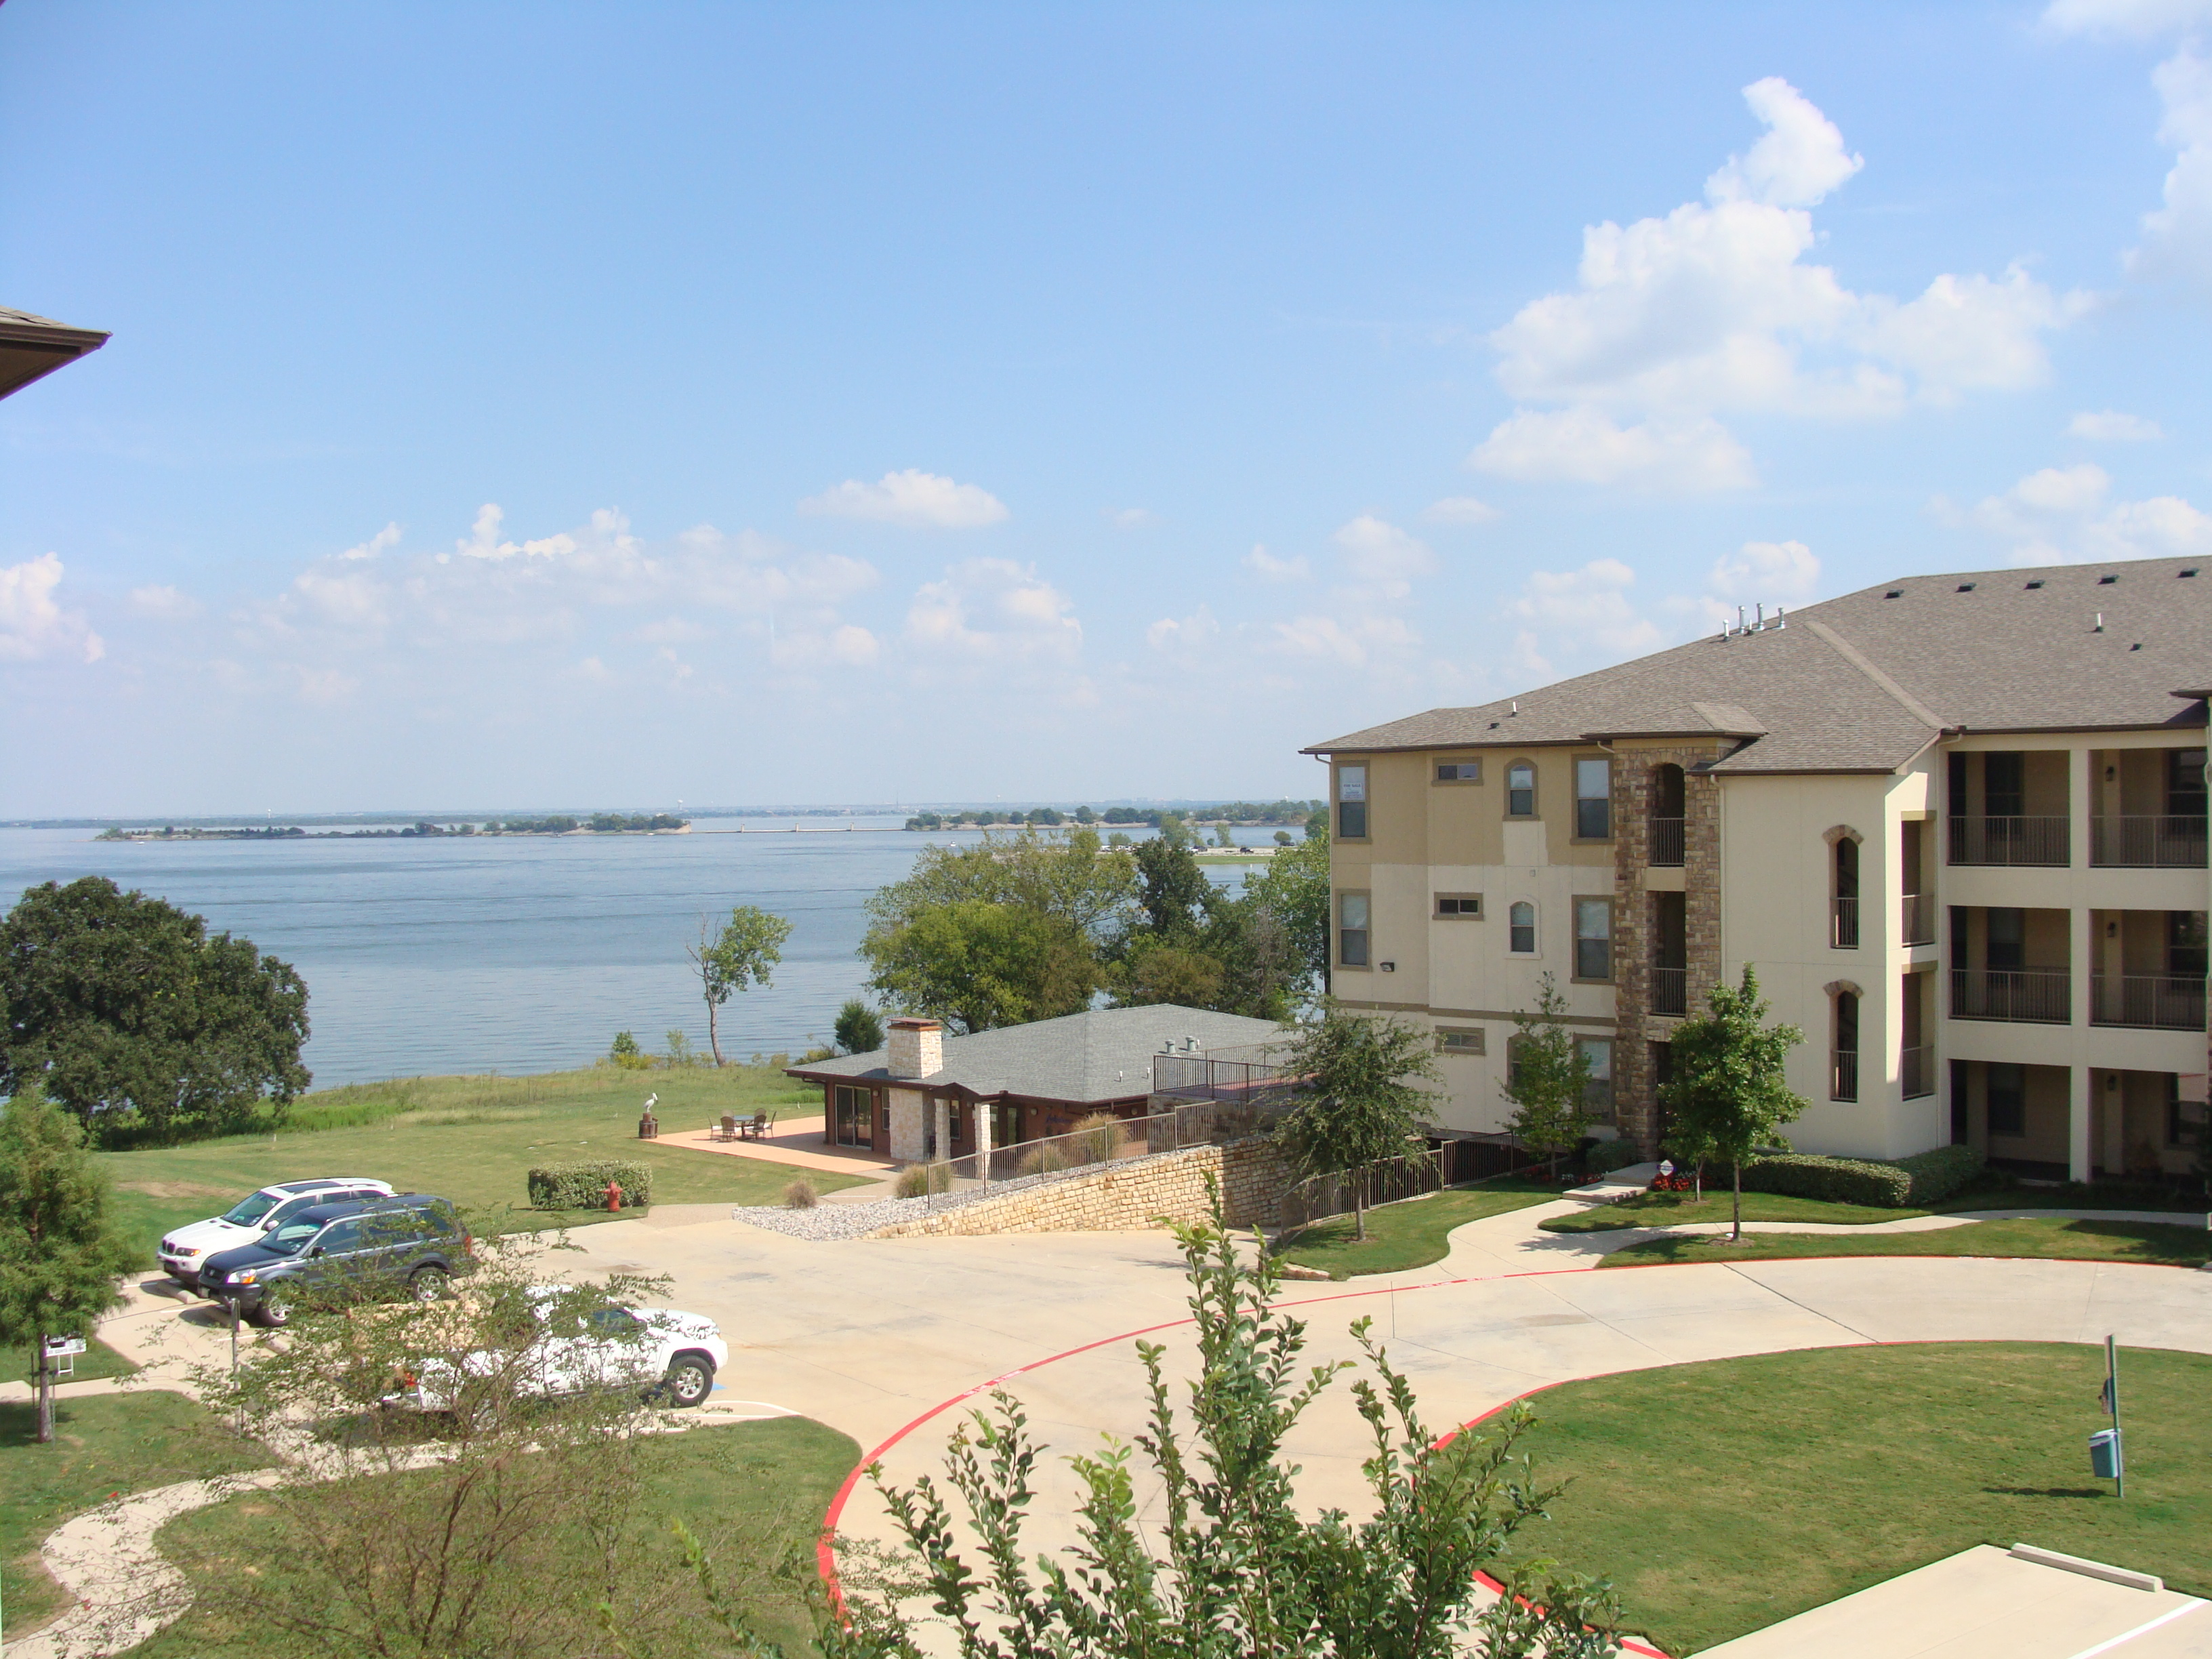 waters edge condominiums brenda taylor 972 489 4050